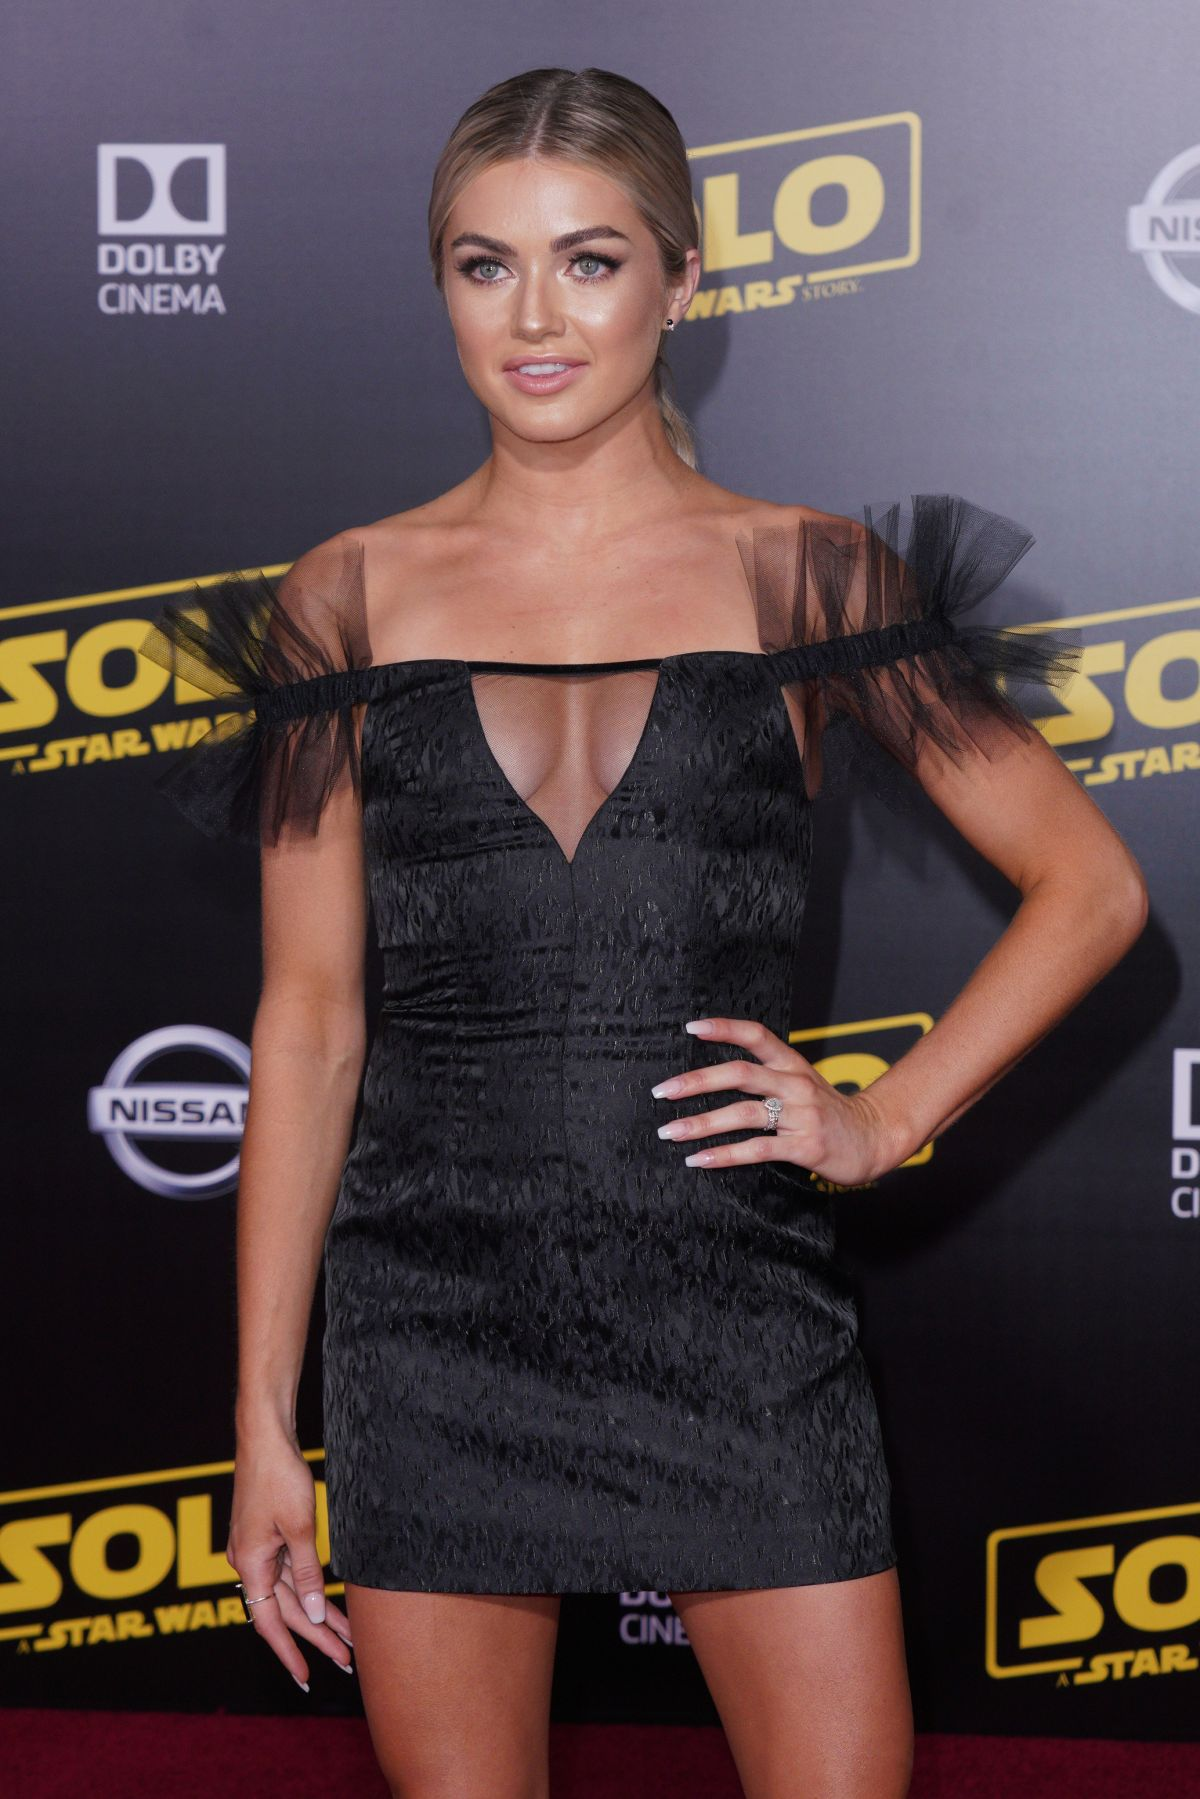 70752360_lindsay-arnold-solo-a-star-wars-story-hollywood-premiere-in-la-10-05-2018.jpg